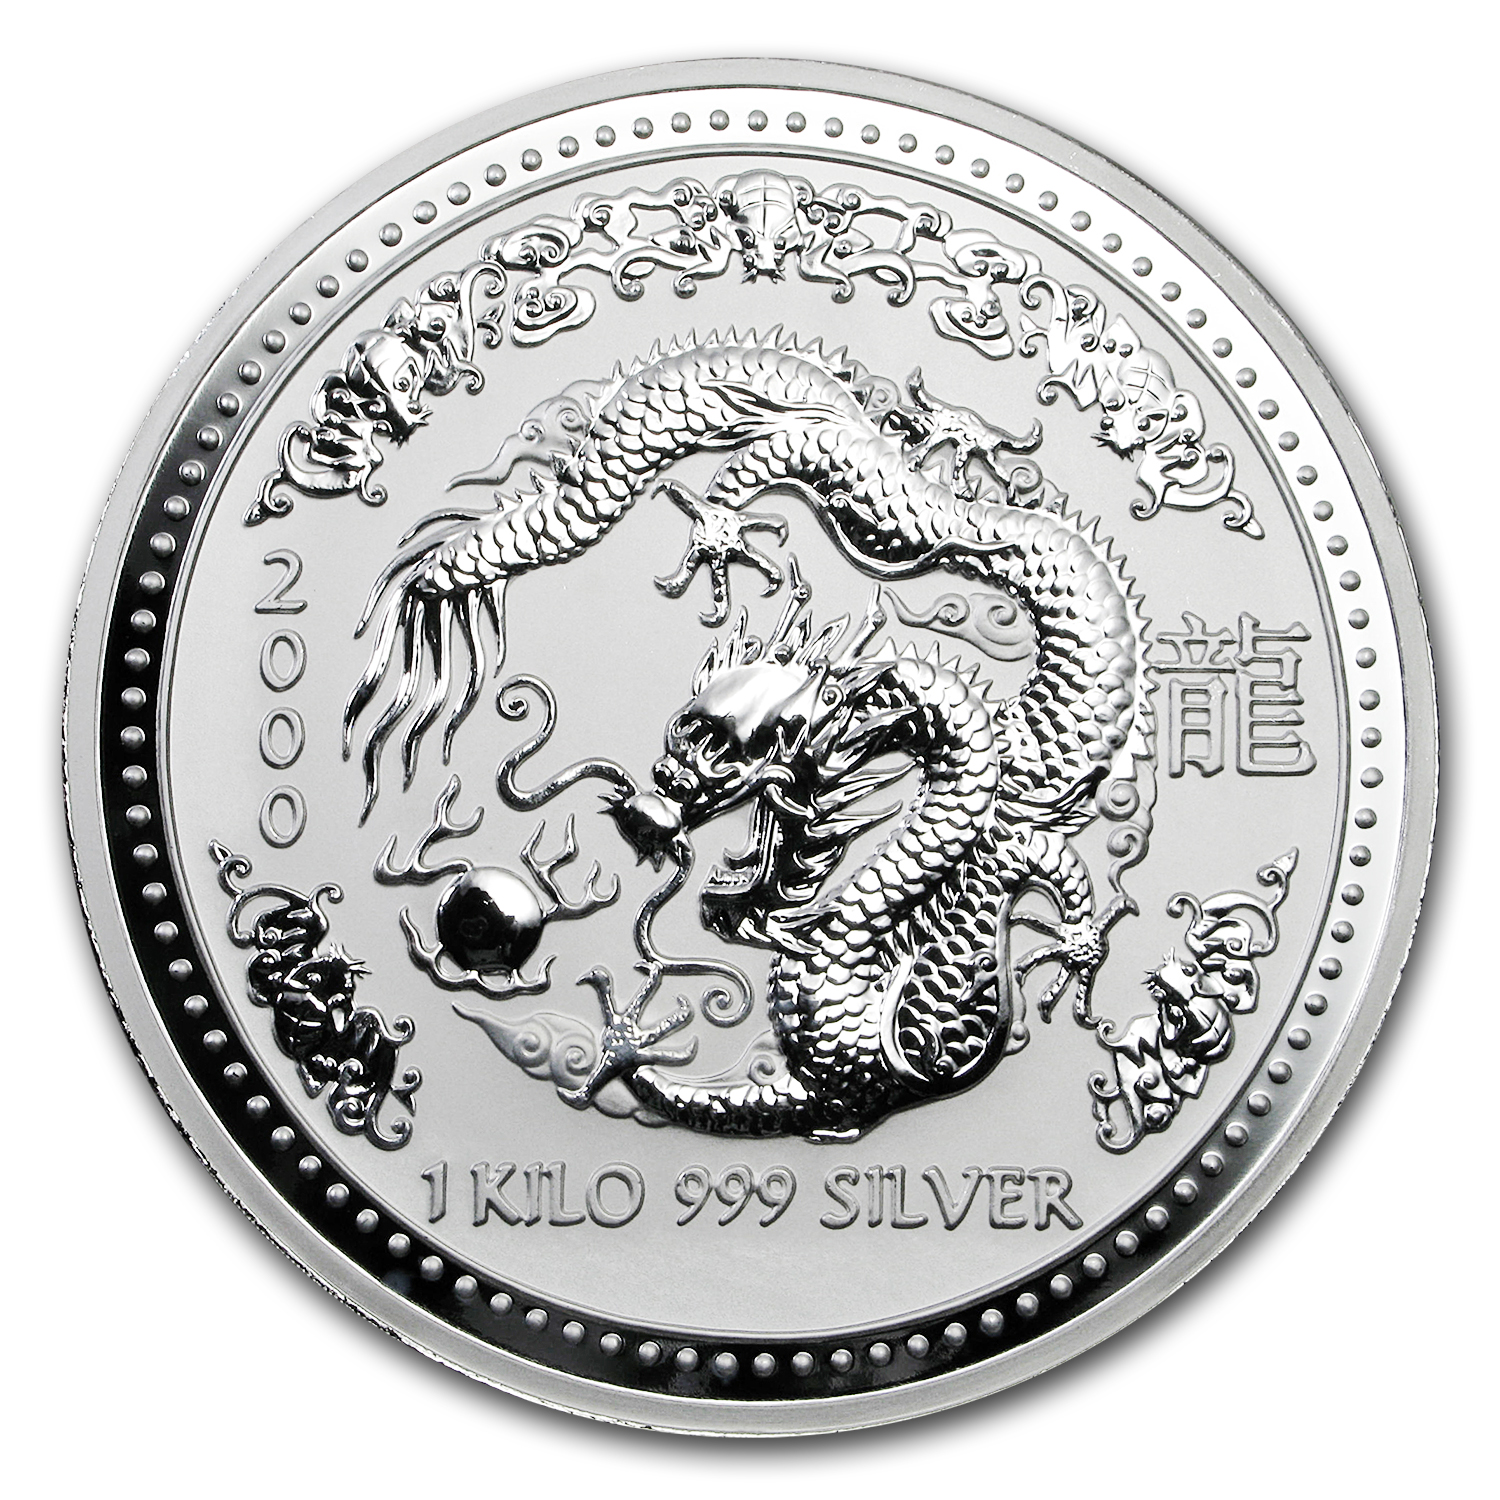 2000 1 Kilo Silver Australian Year of the Dragon BU